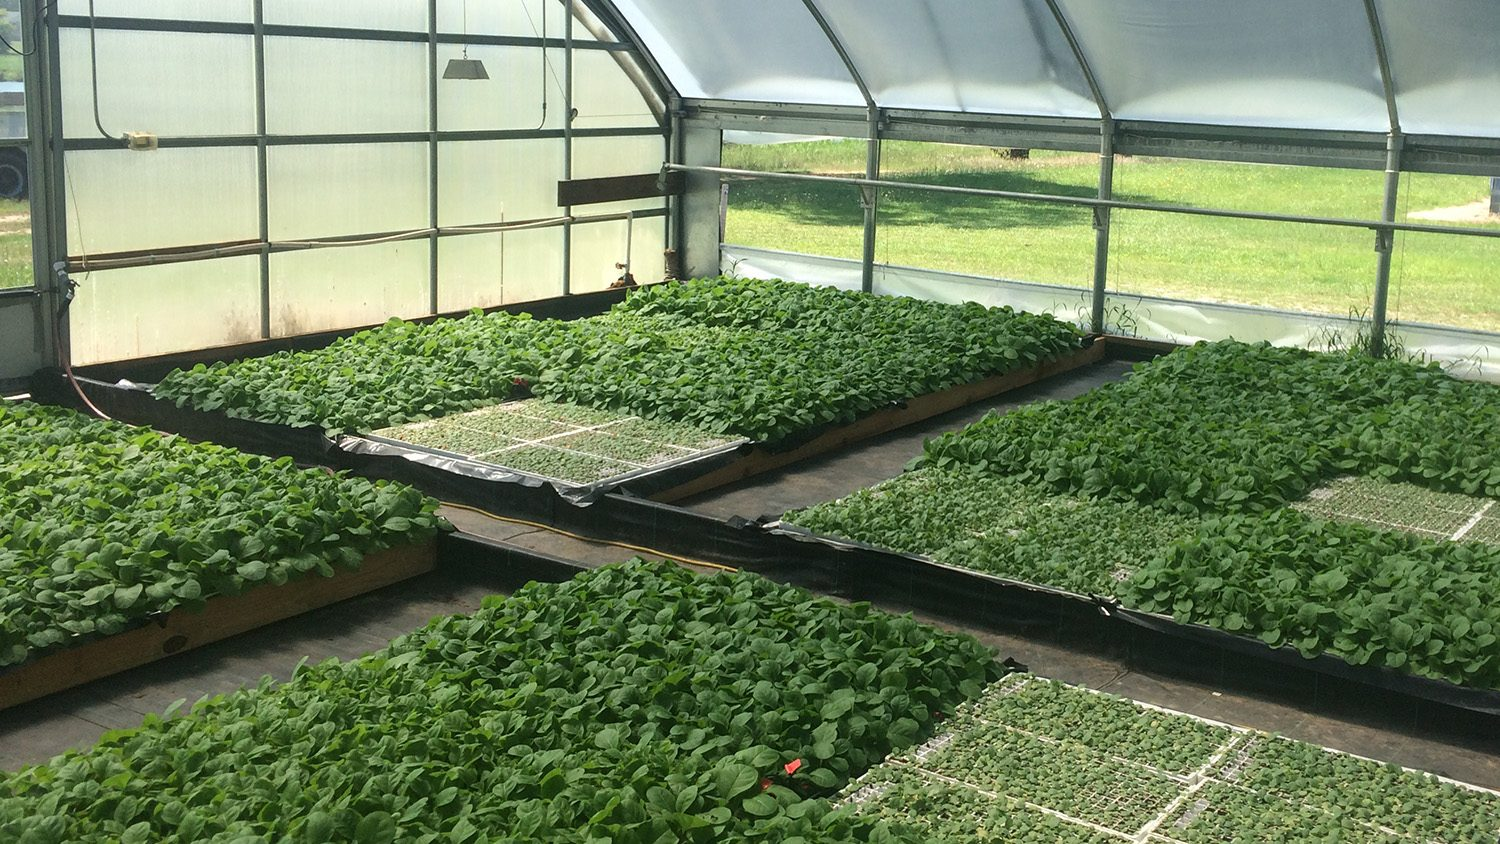 Tobacco seedlings in a greenhouse